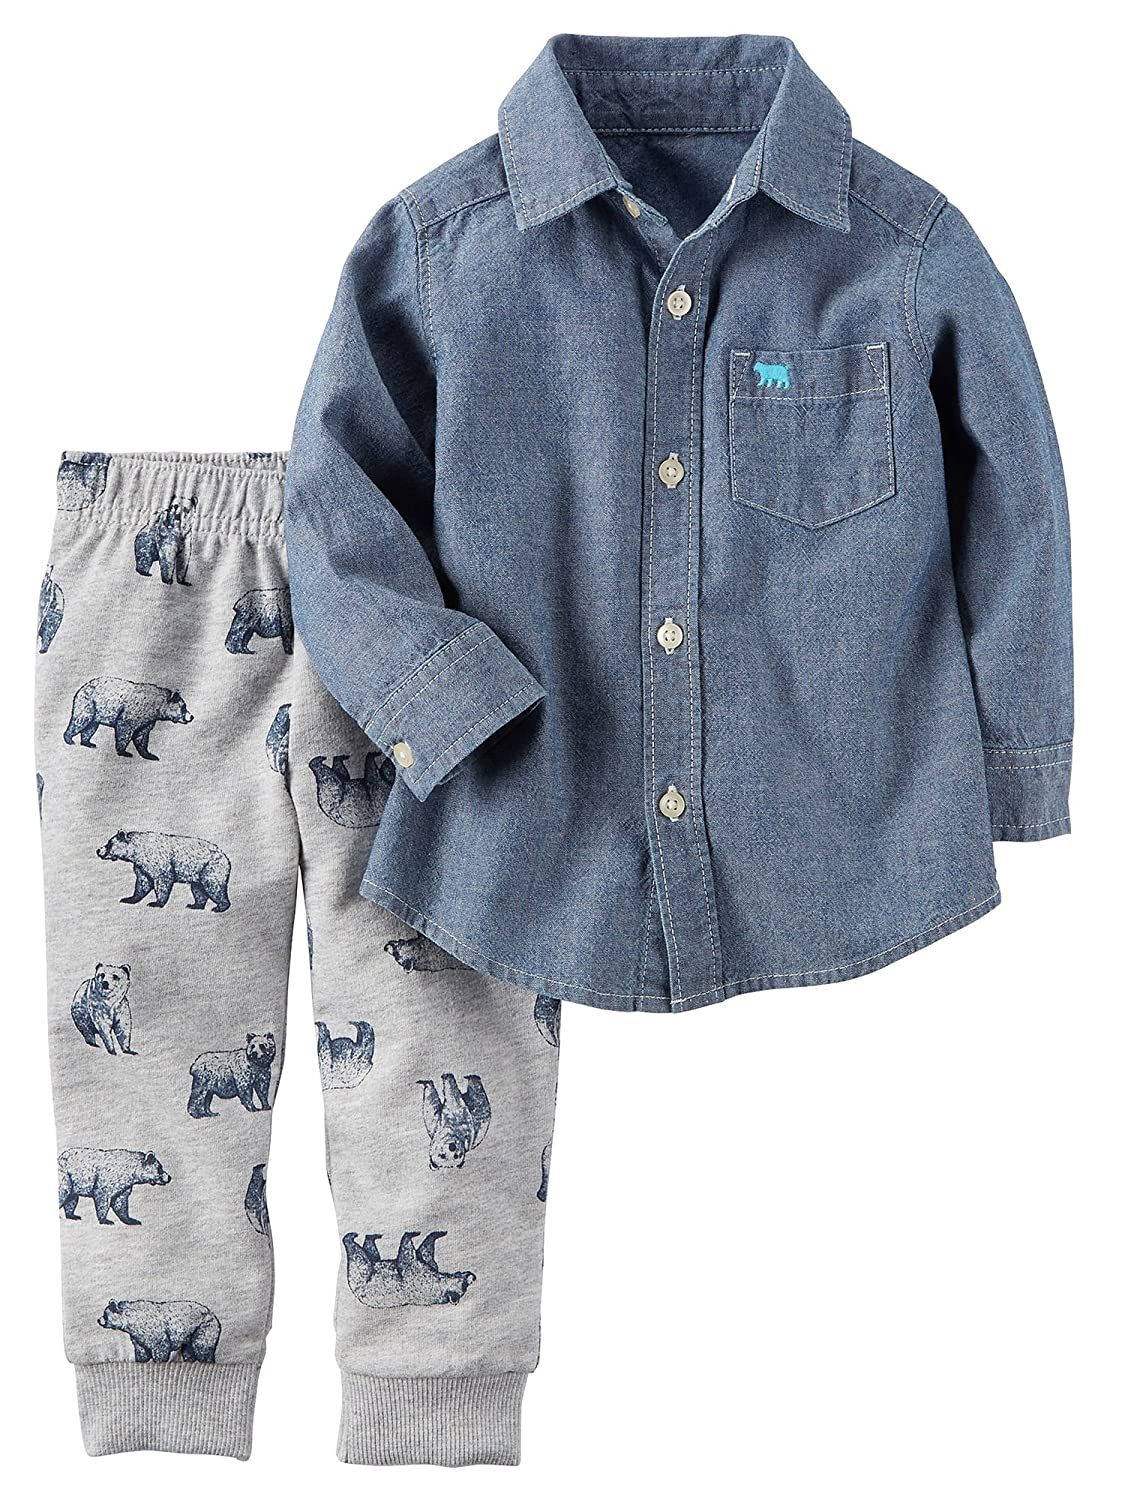 Carters Boys 2T-4T 2 Piece Long Sleeve Top and Pants Set 249G510